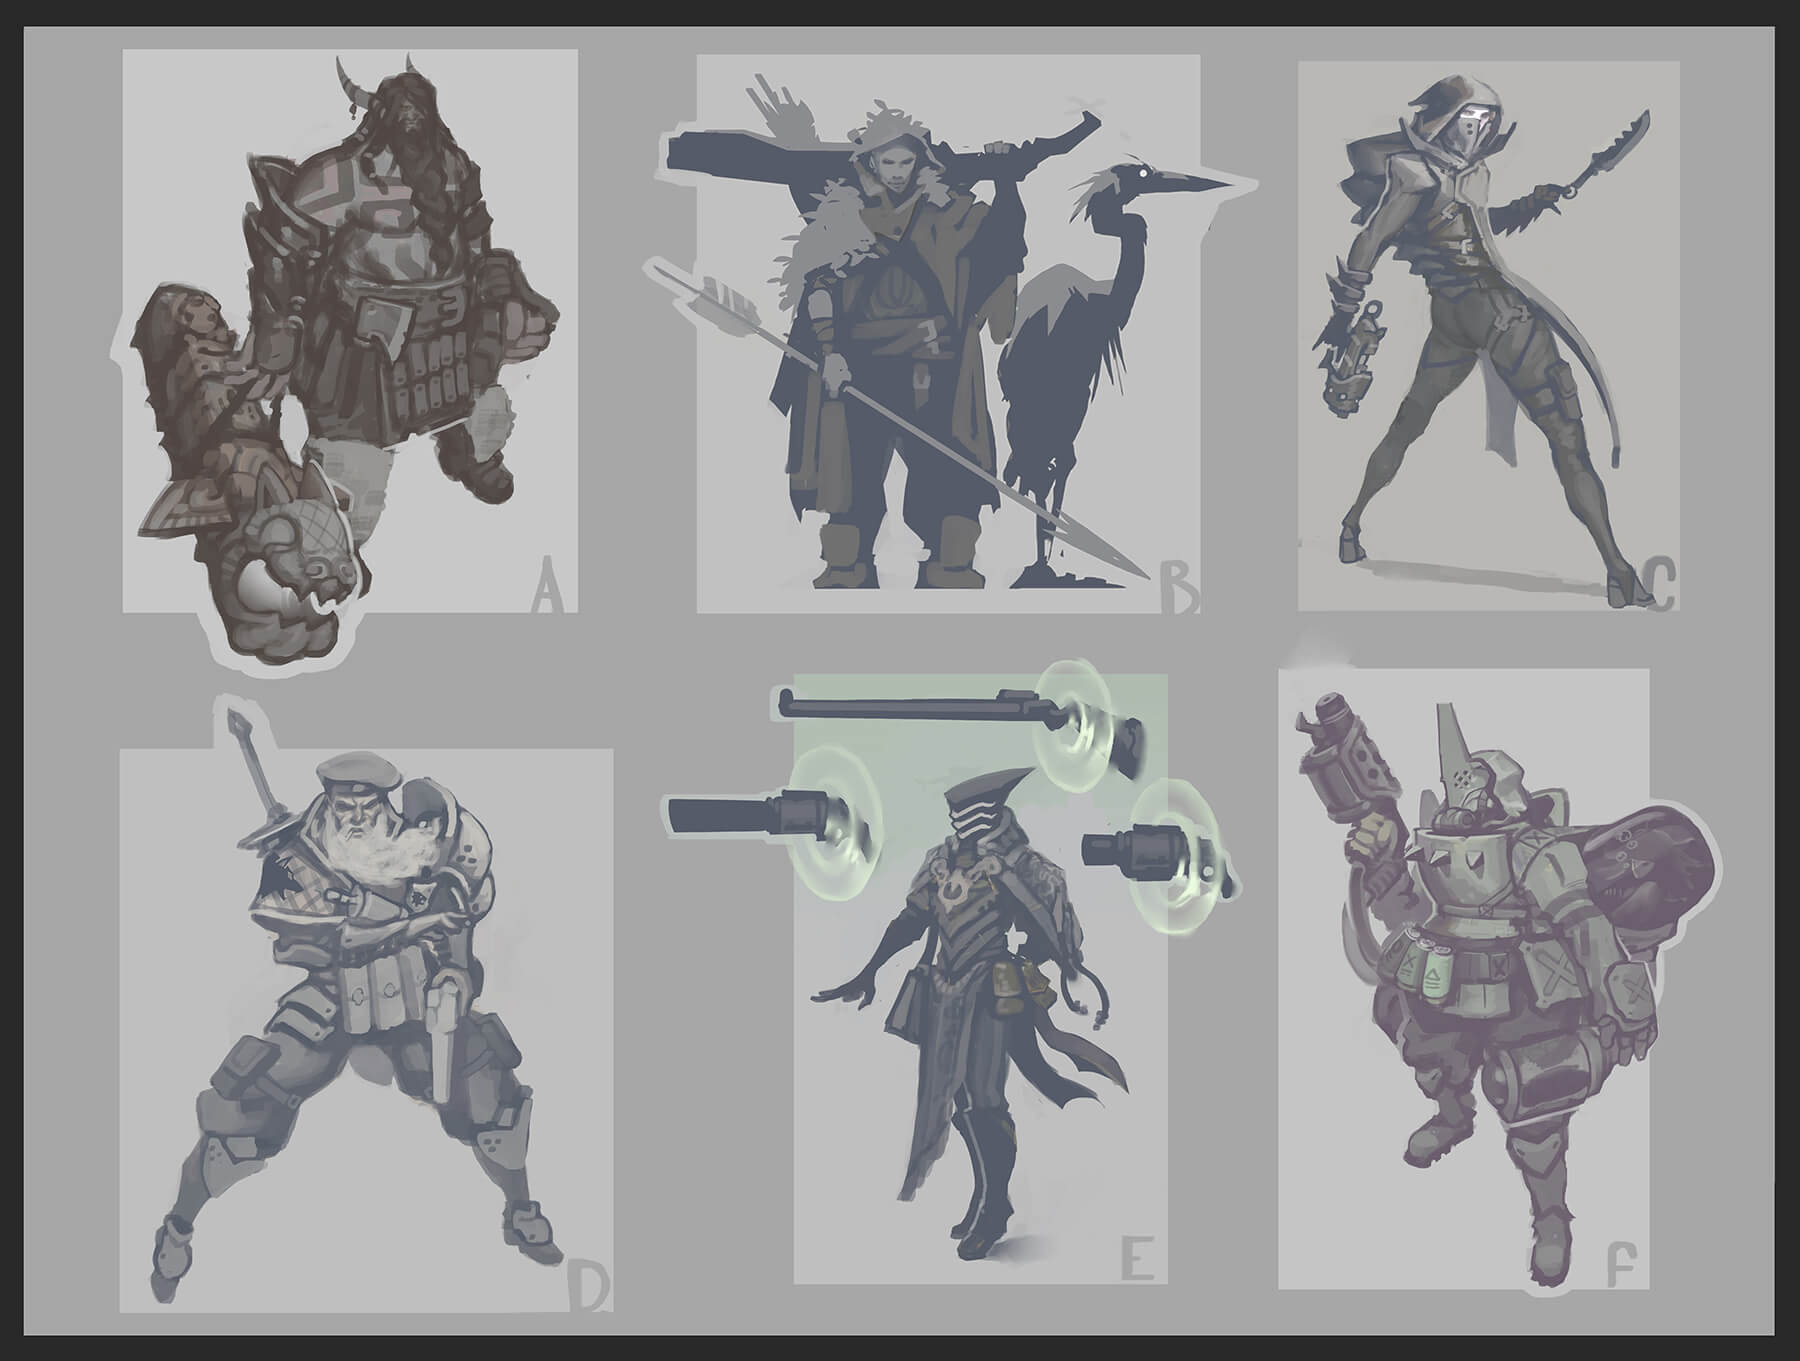 Some early Aphelios concepts including Braum's mean older brother, one of Quinn's Demacian Ranger friends, a Zaun Assassin, a Knight, a Shuriman Wizard, and a Zaun 'Bard'